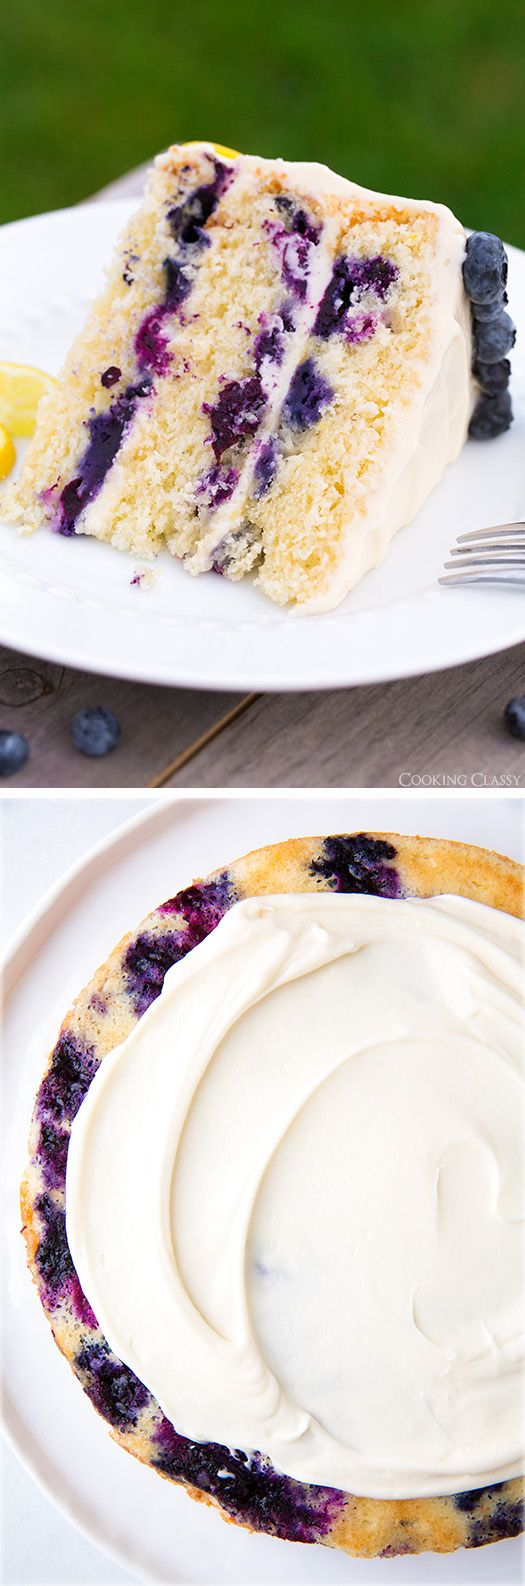 Lemon Blueberry Cake with Cream Cheese Frosting - This got RAVE reviews!